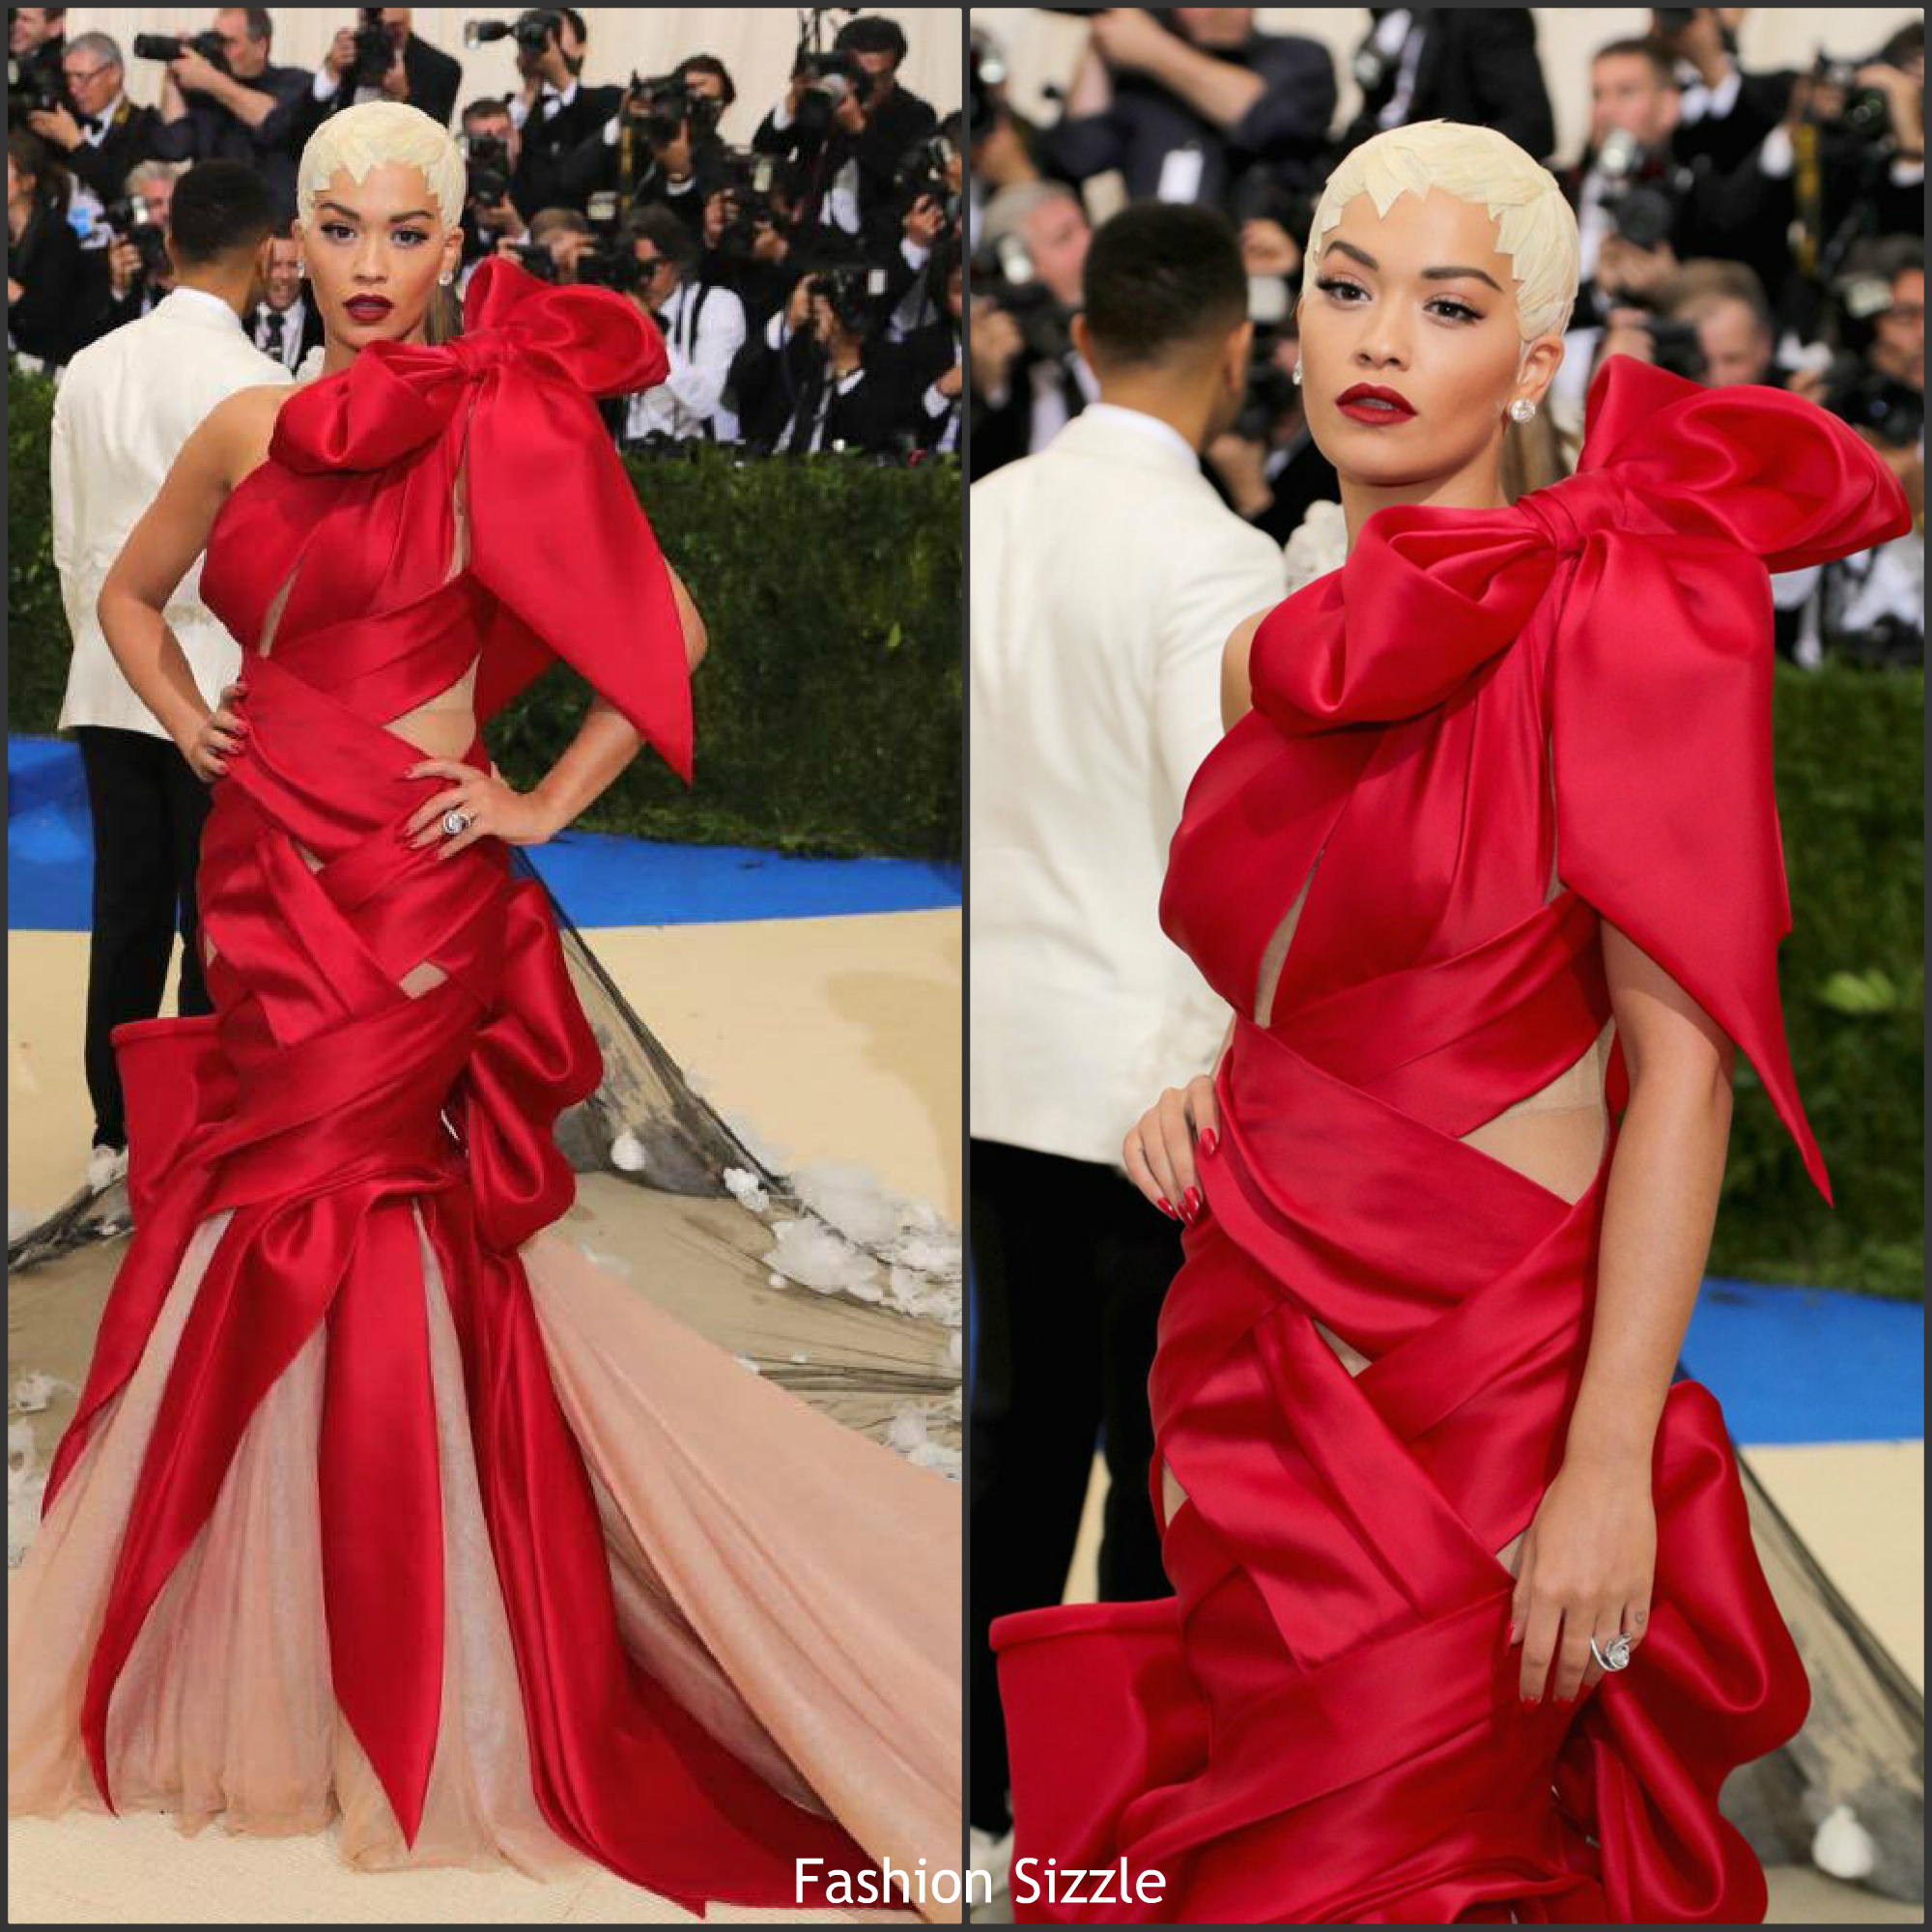 rita-ora-in-marches-2017-met-gala